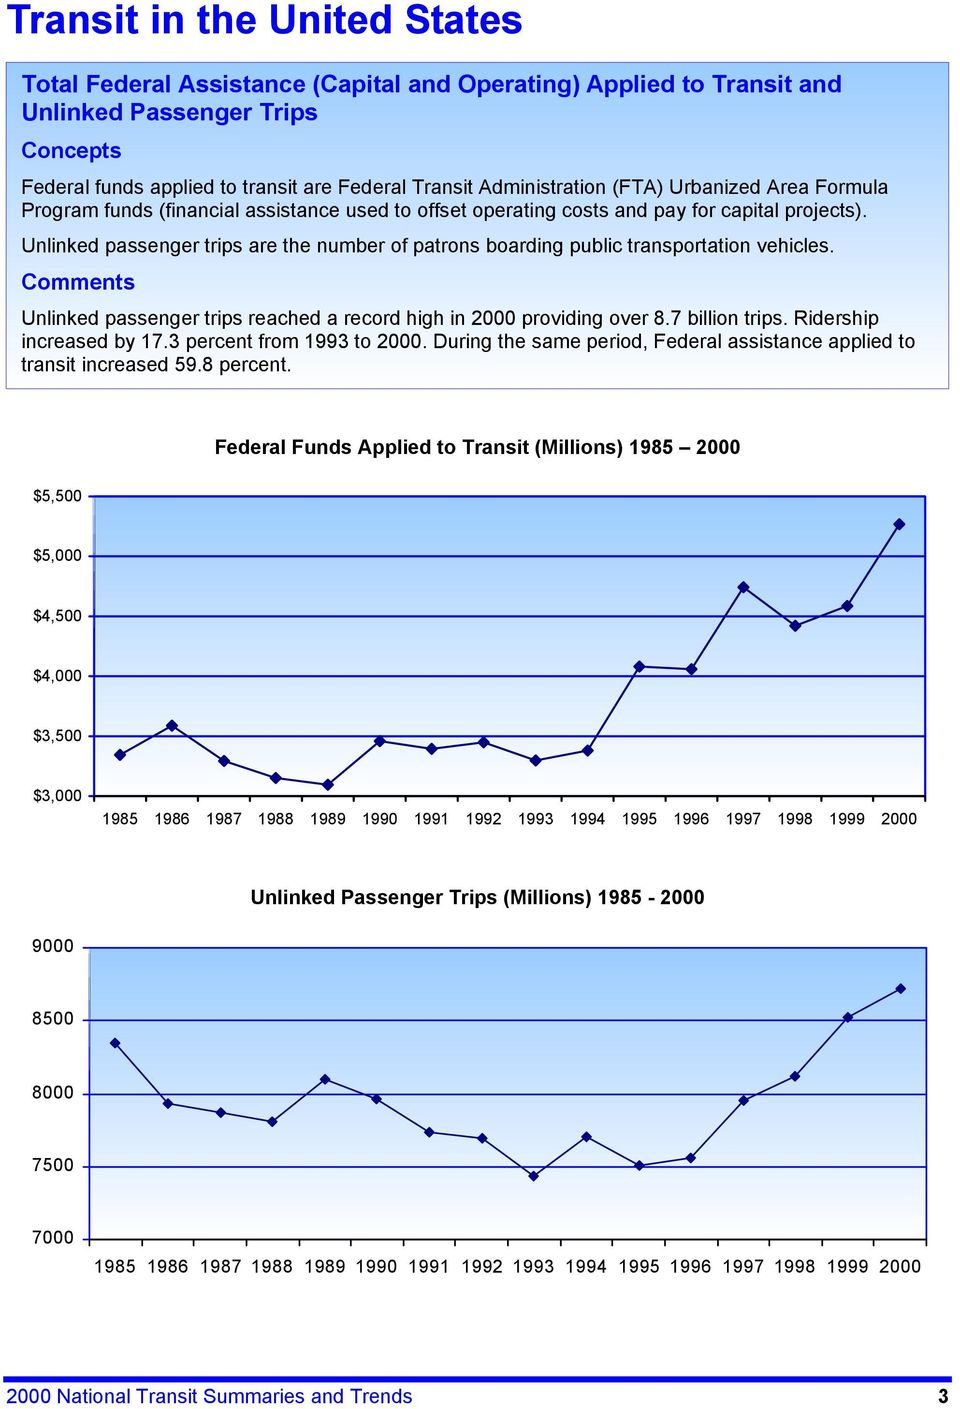 Comments passenger trips reached a record high in 2000 providing over 8.7 billion trips. Ridership increased by 17.3 percent from 1993 to 2000.